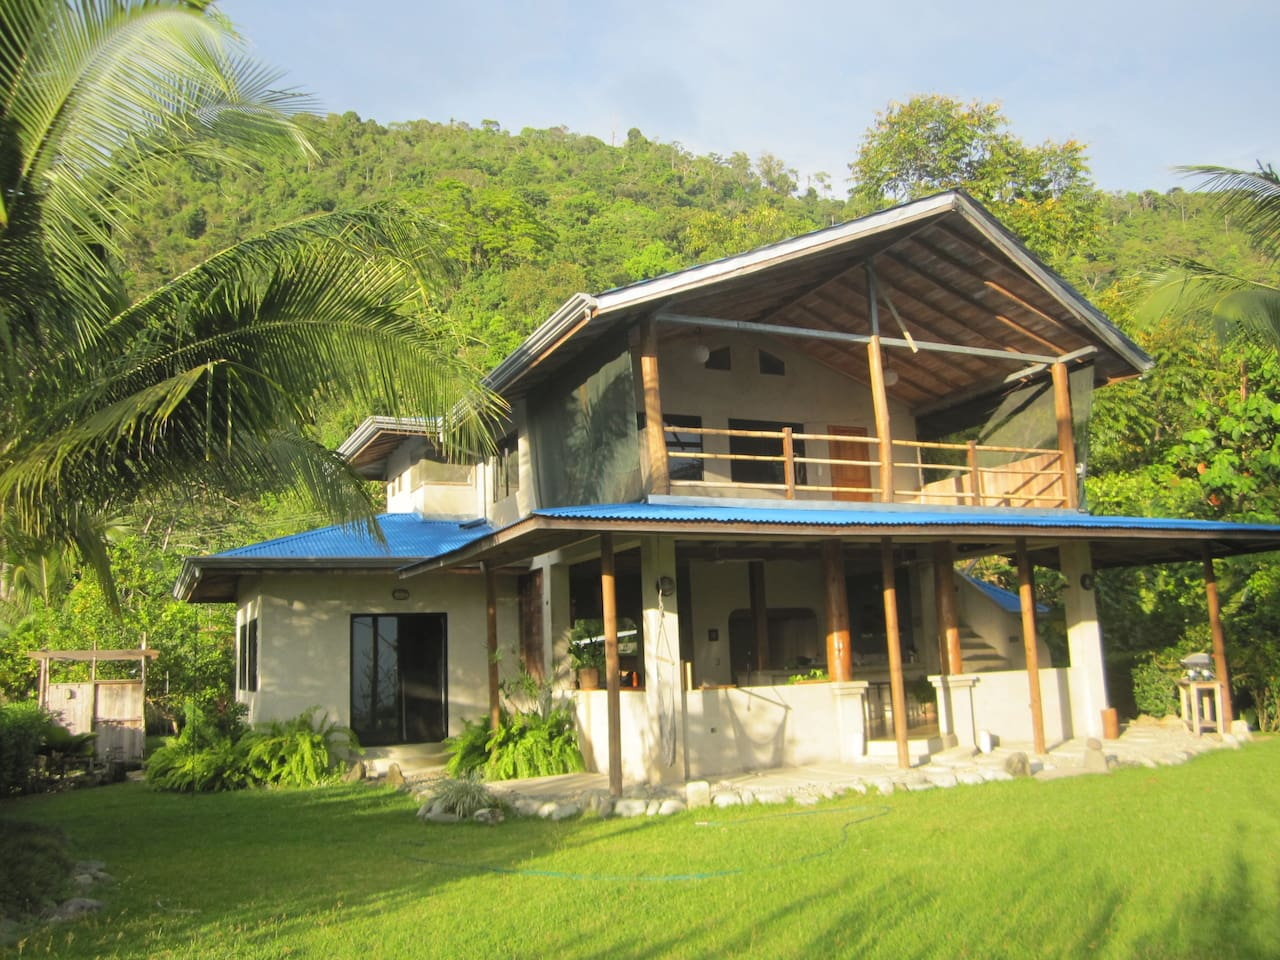 back of house faces ocean, sunset, and hovers over canopy of jungle